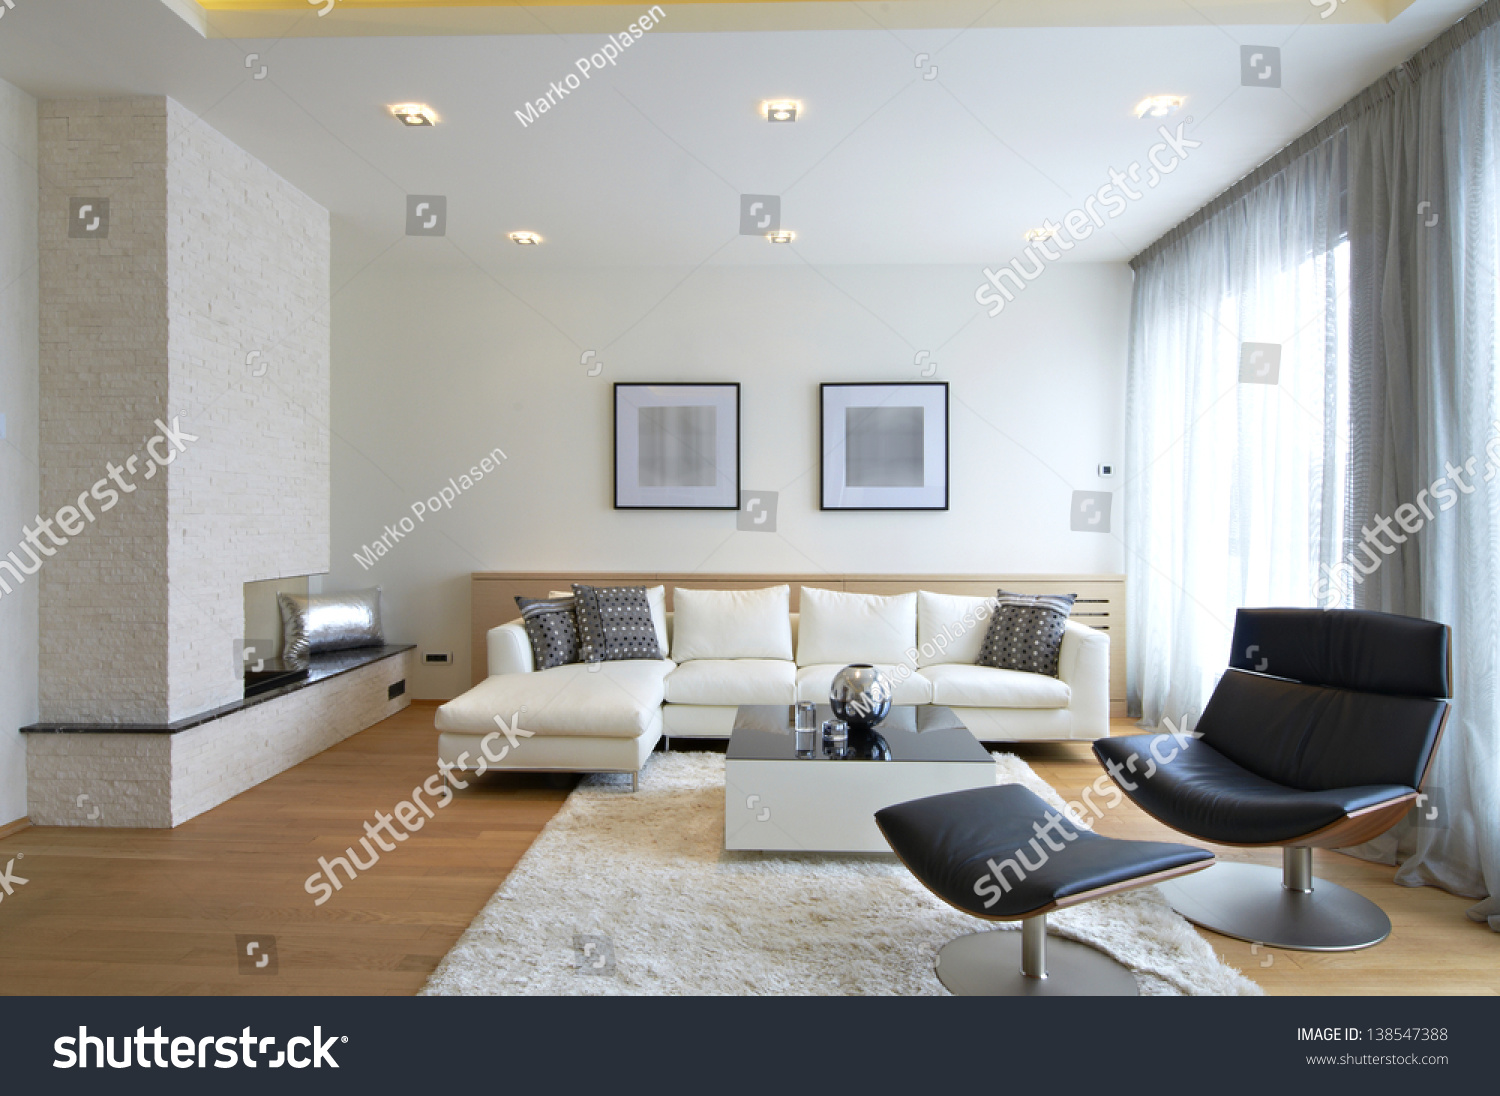 Modern Living Room Interior Stock Photo 138547388 - Shutterstock